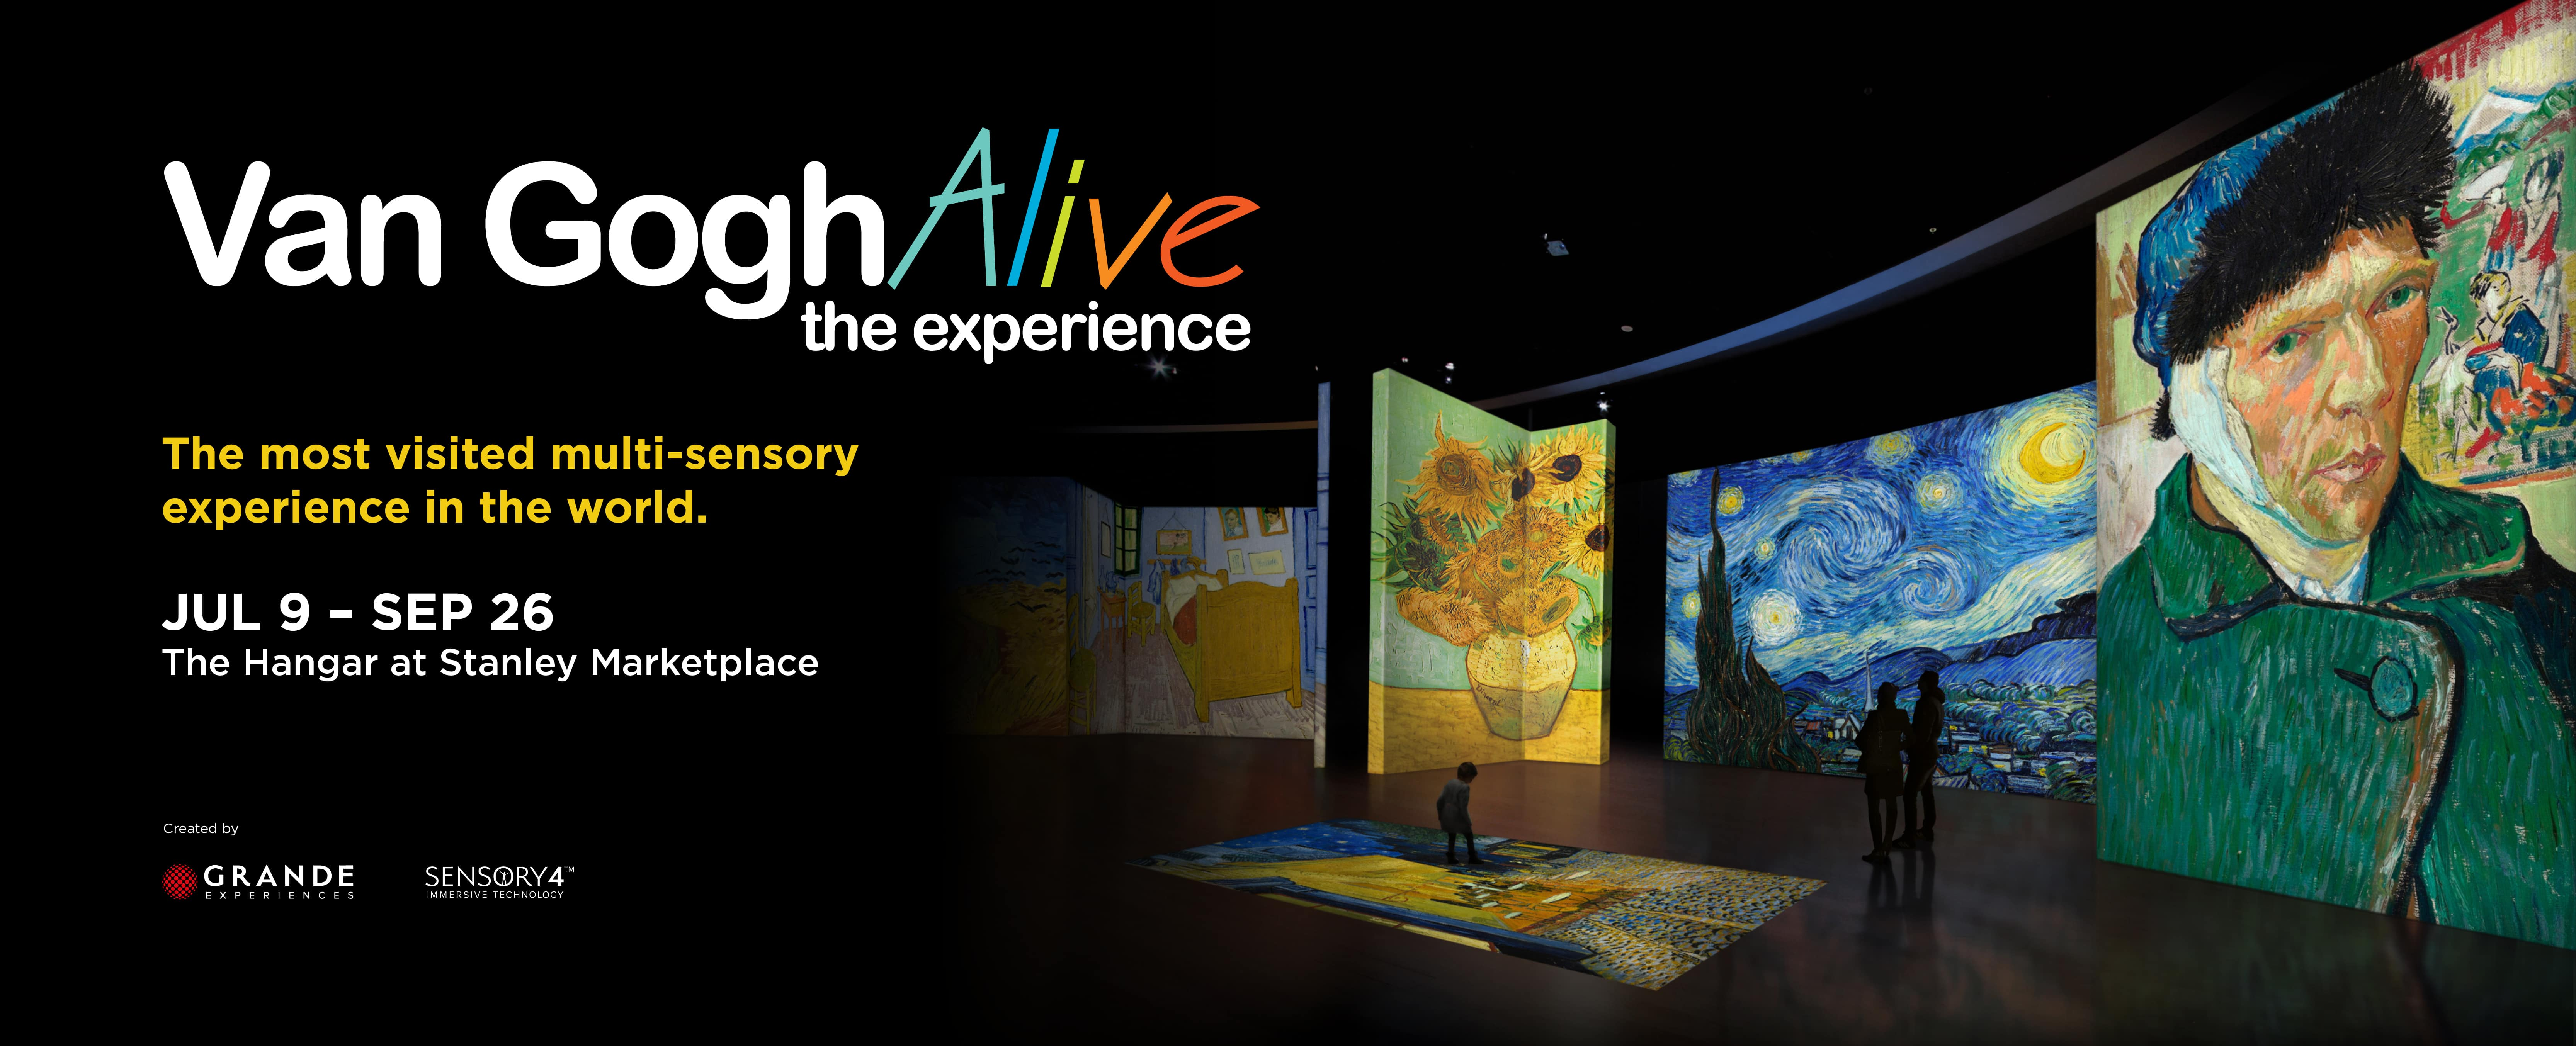 Van Gogh Alive runs July 9 to September 26 at the Stanley Marketplace